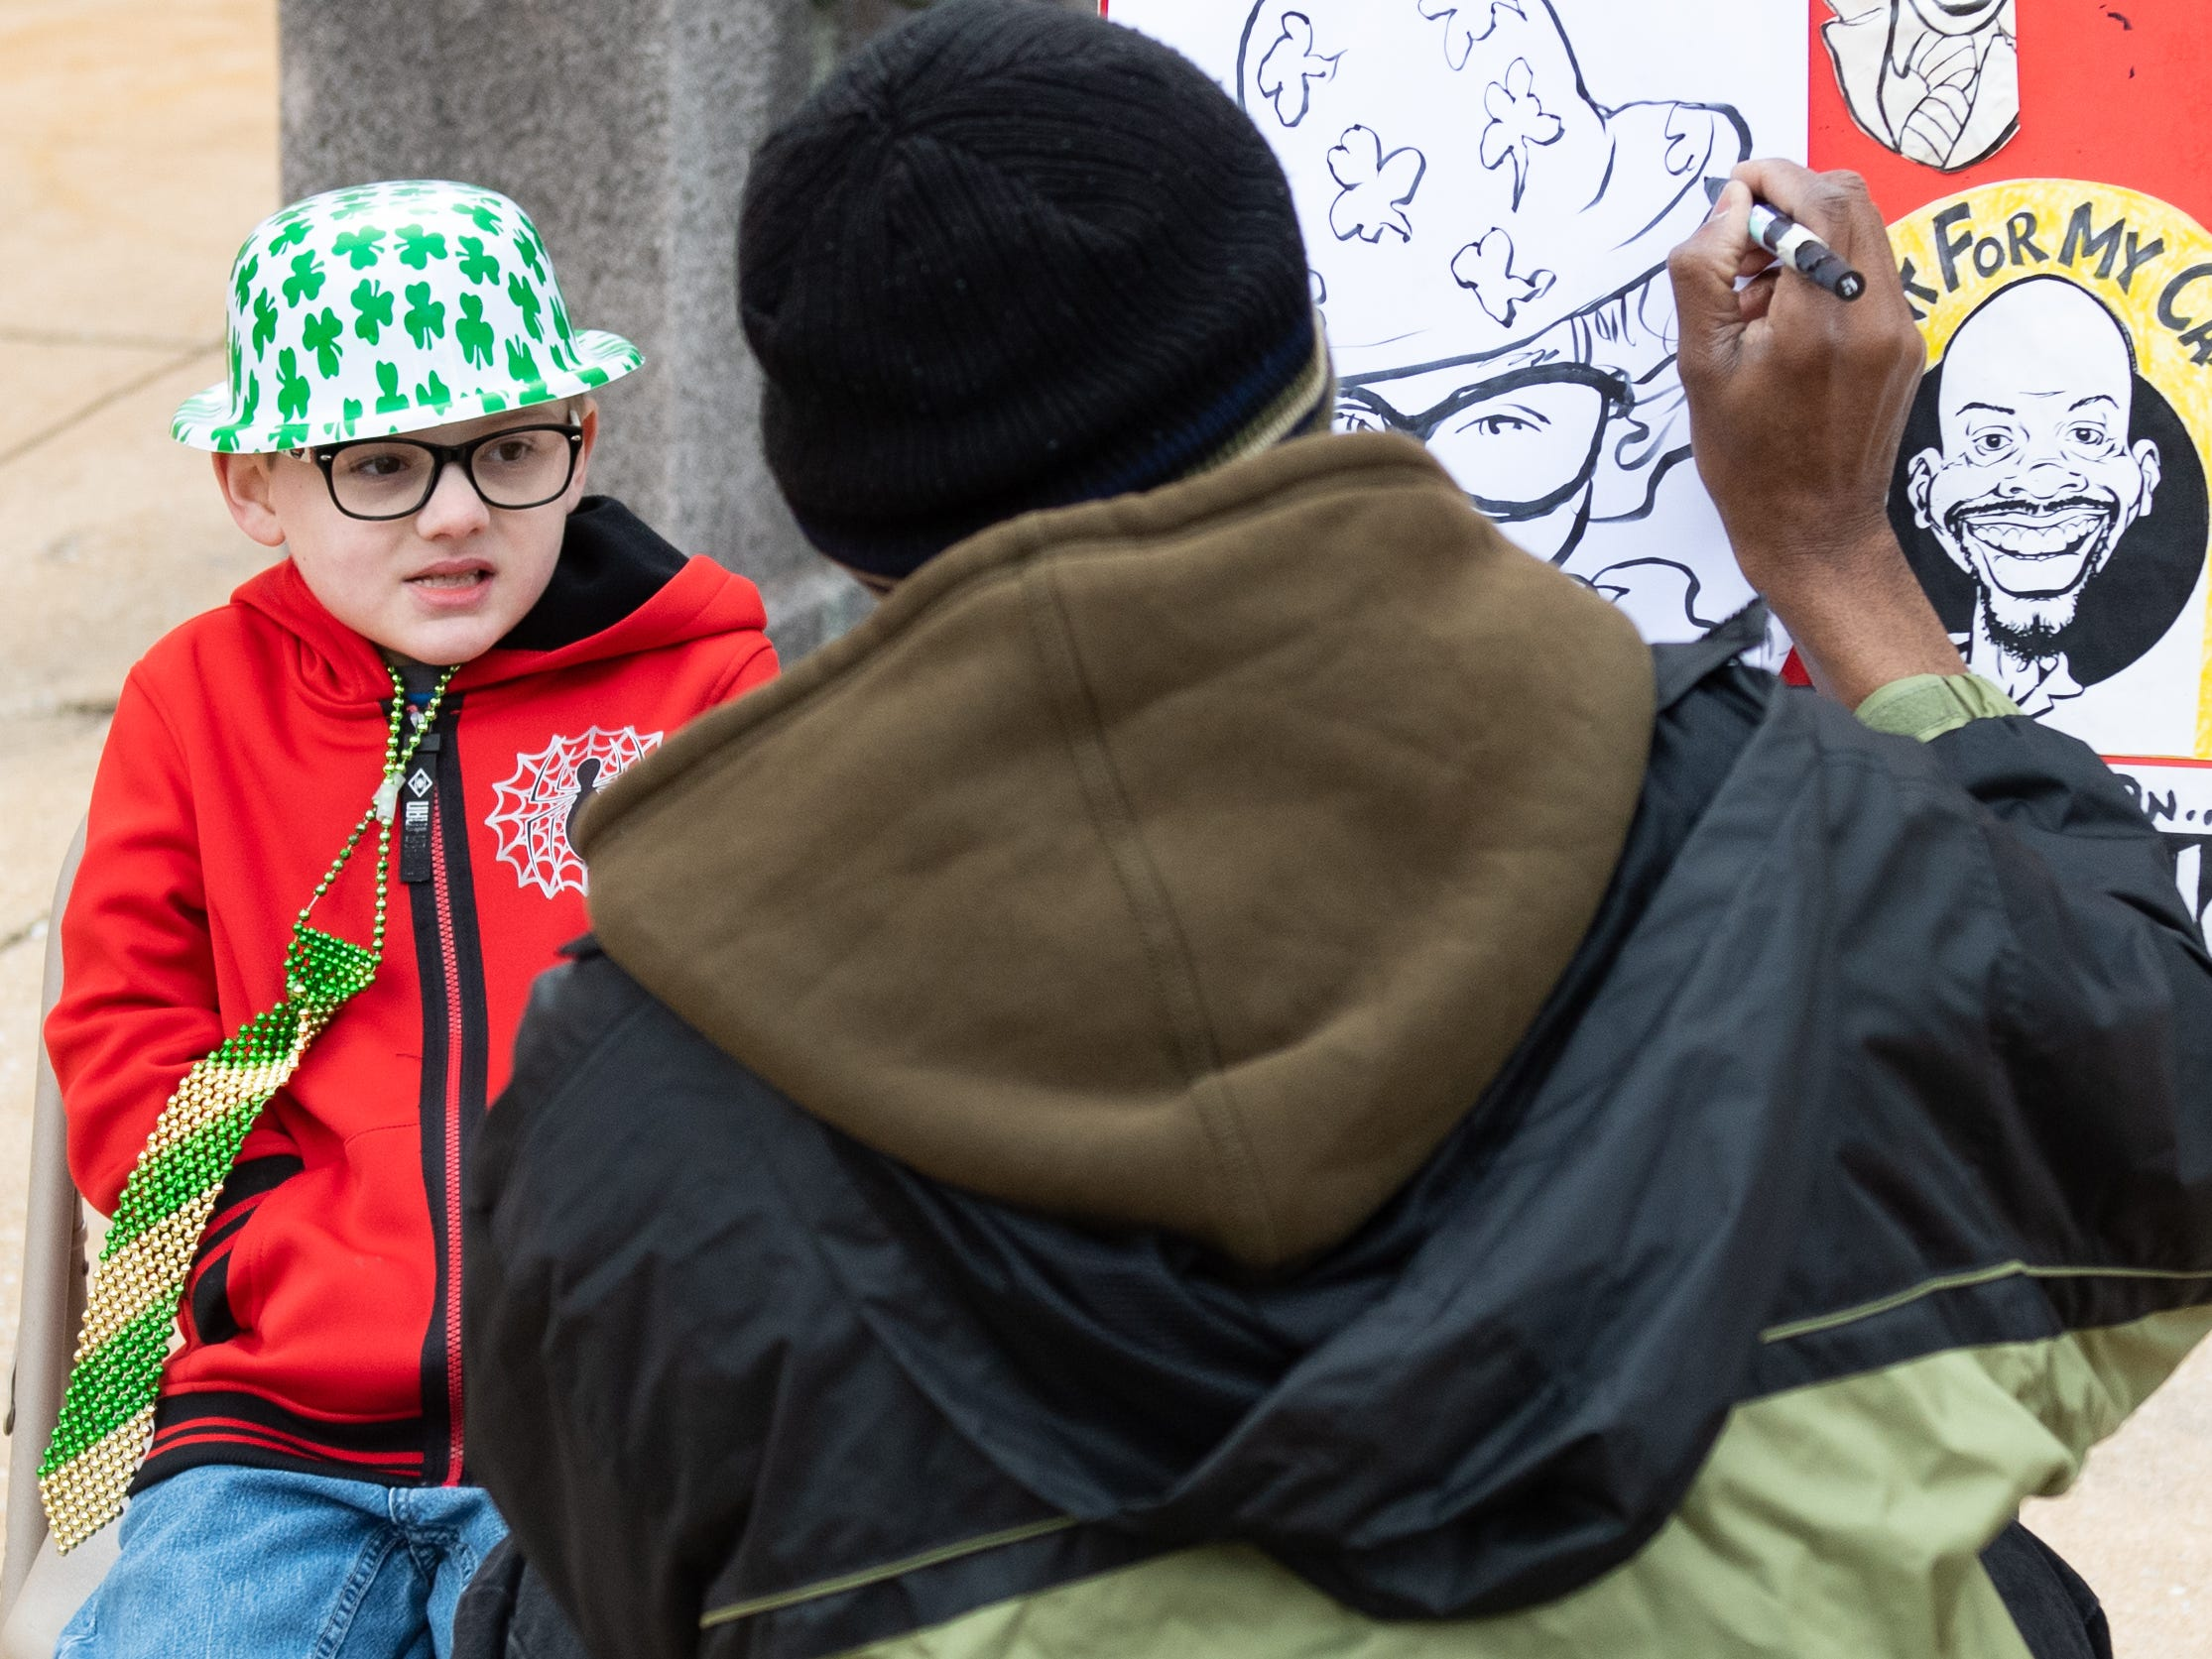 Max Sheffer of Windsor Township gets a caricature done during the St. Patrick's Day Parade, March 16, 2019.